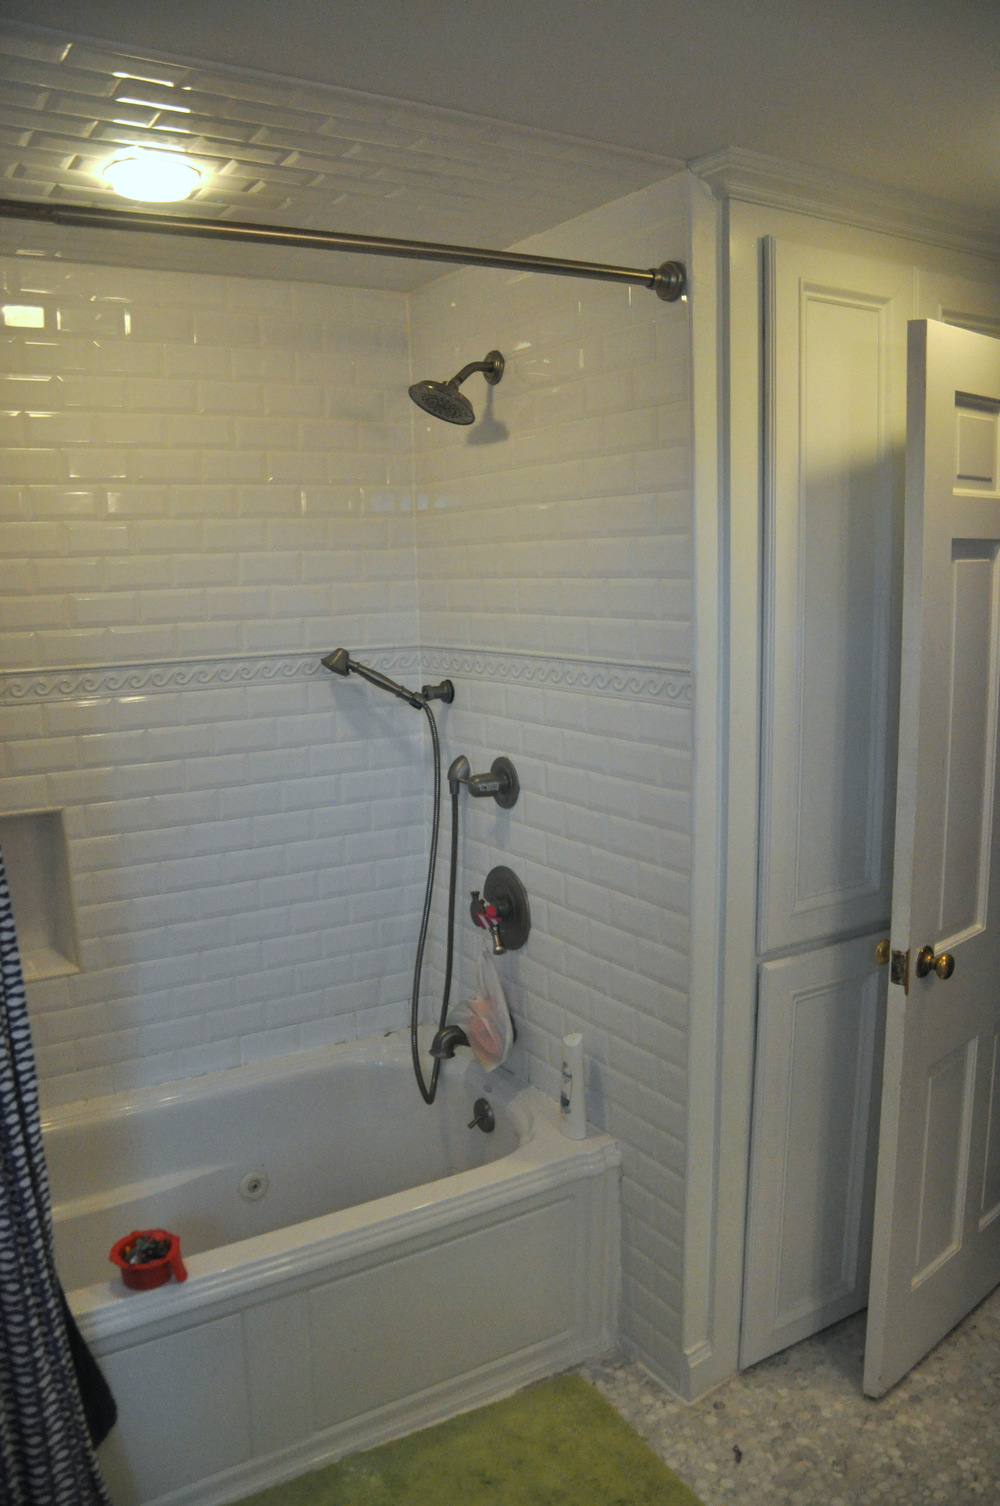 New tile and fixtures